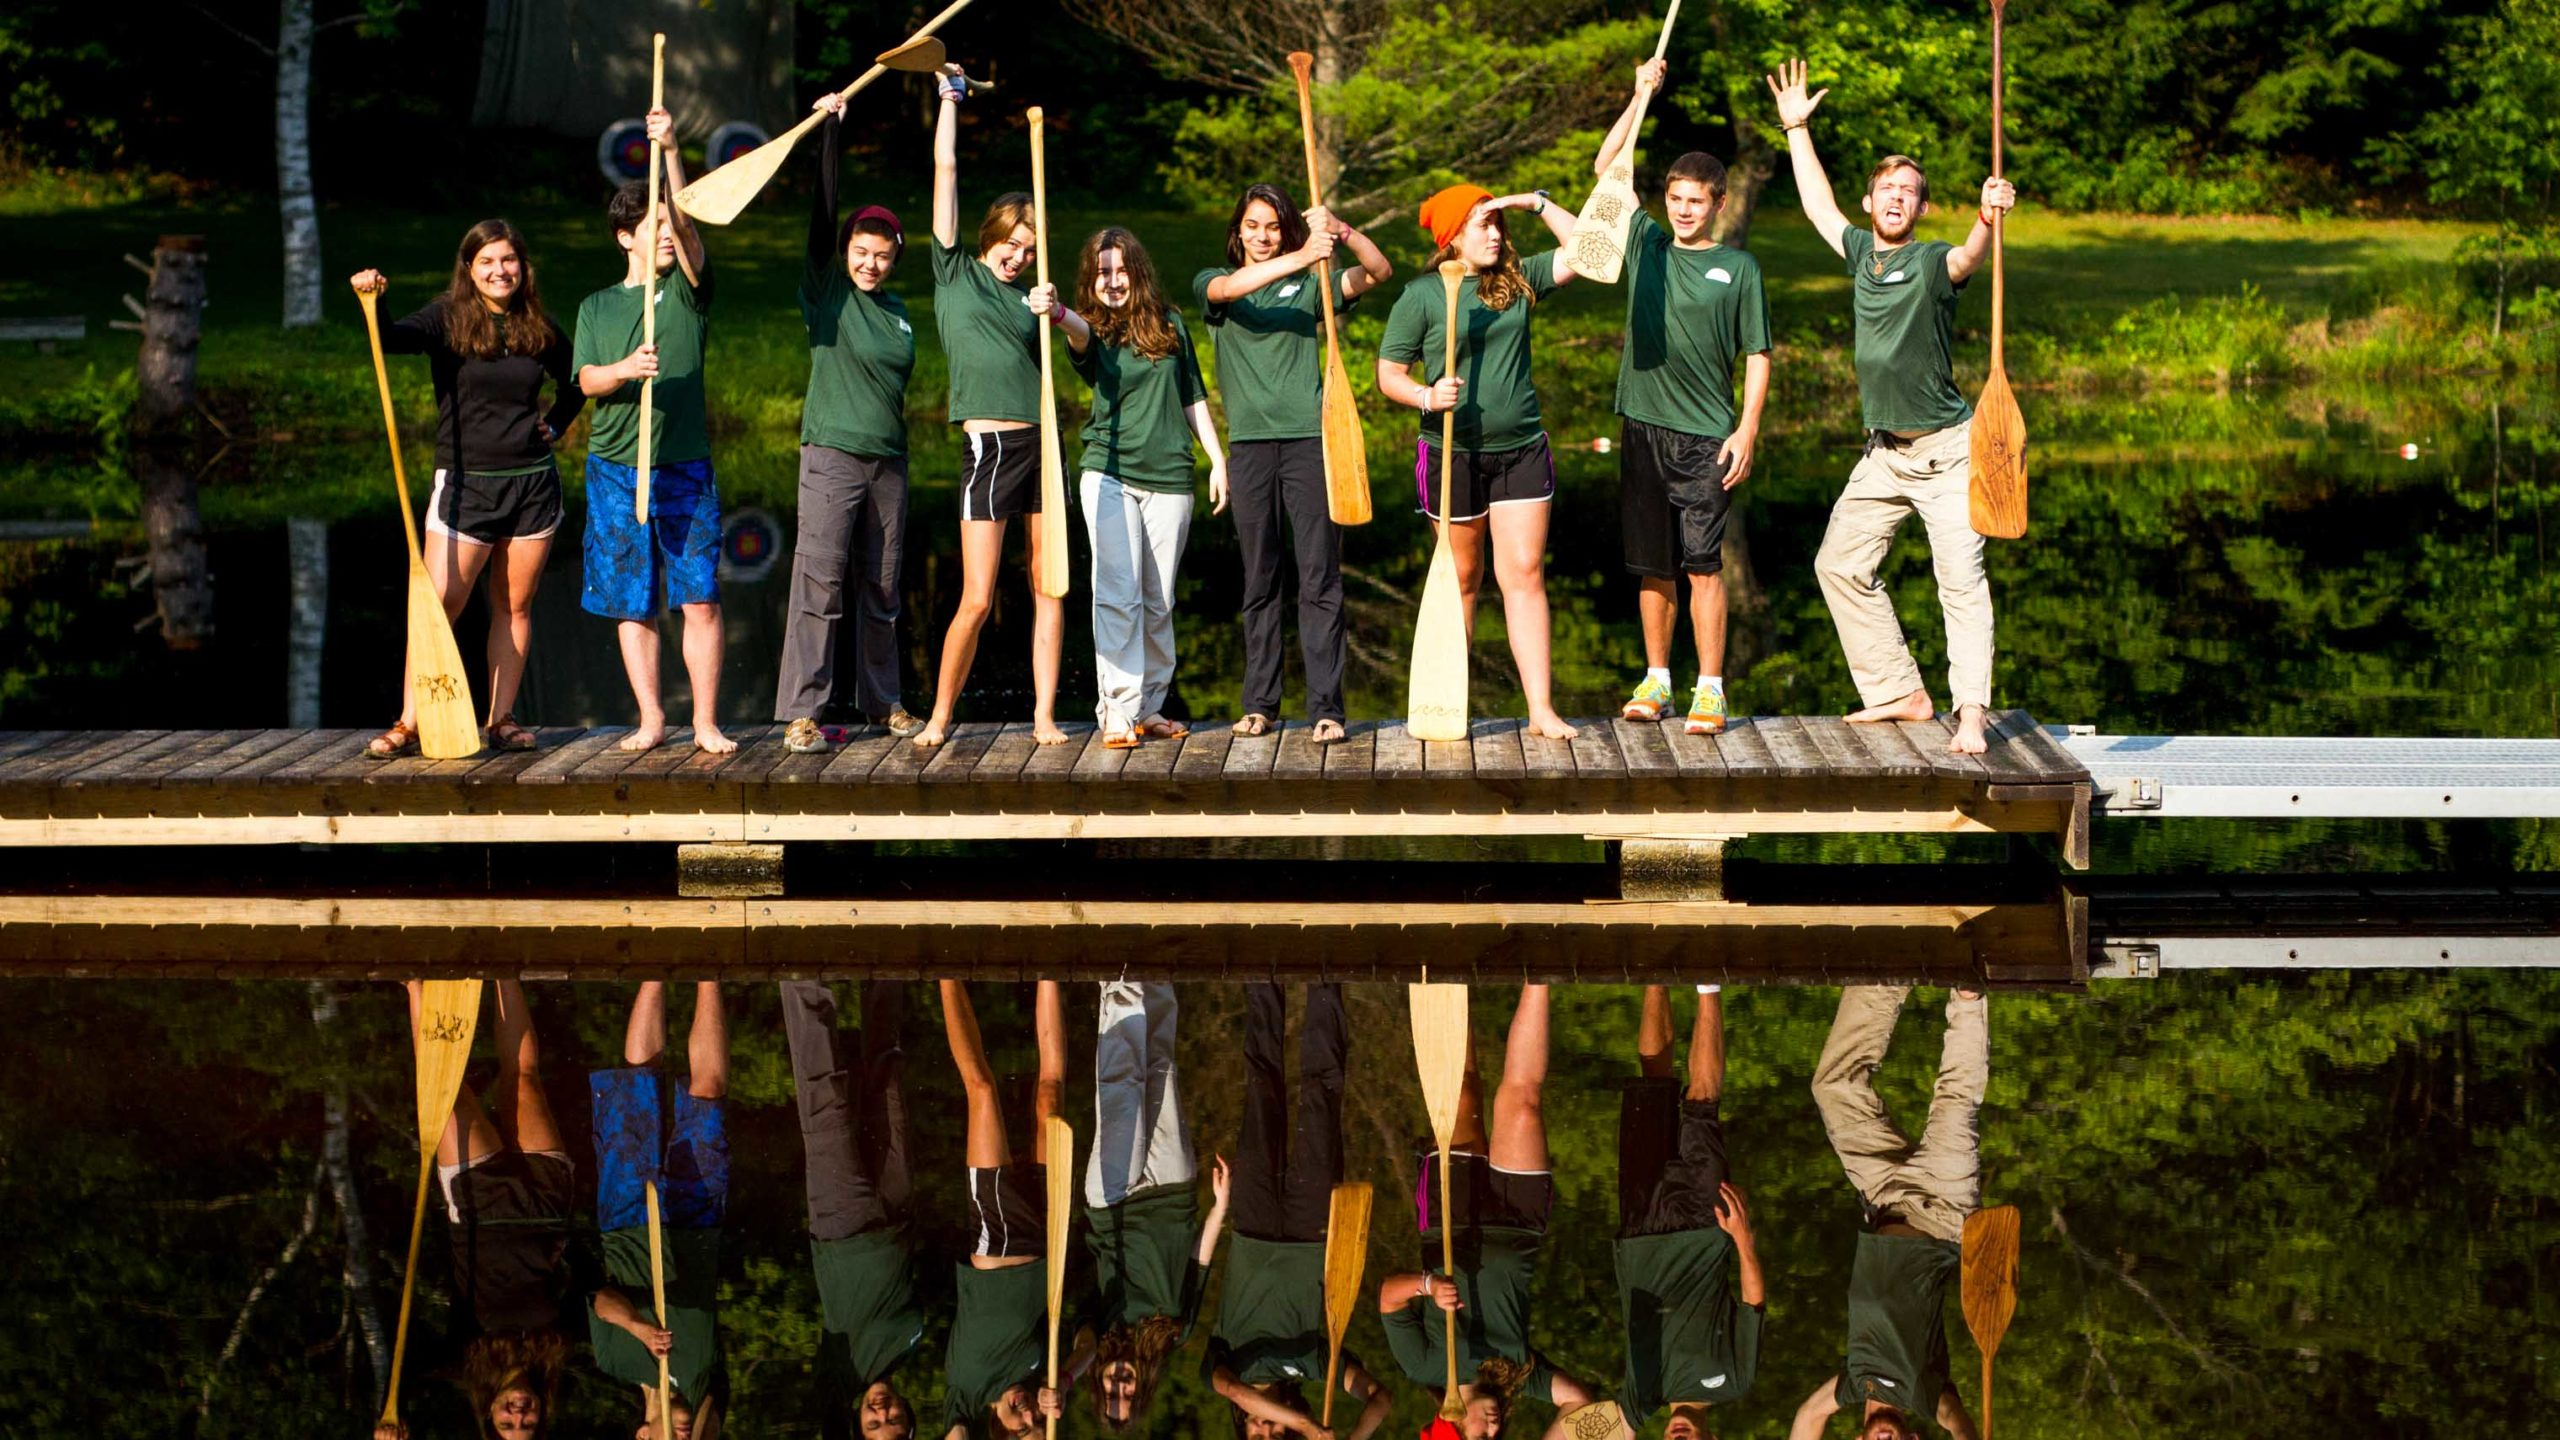 Campers standing on the dock holding paddles in the air.